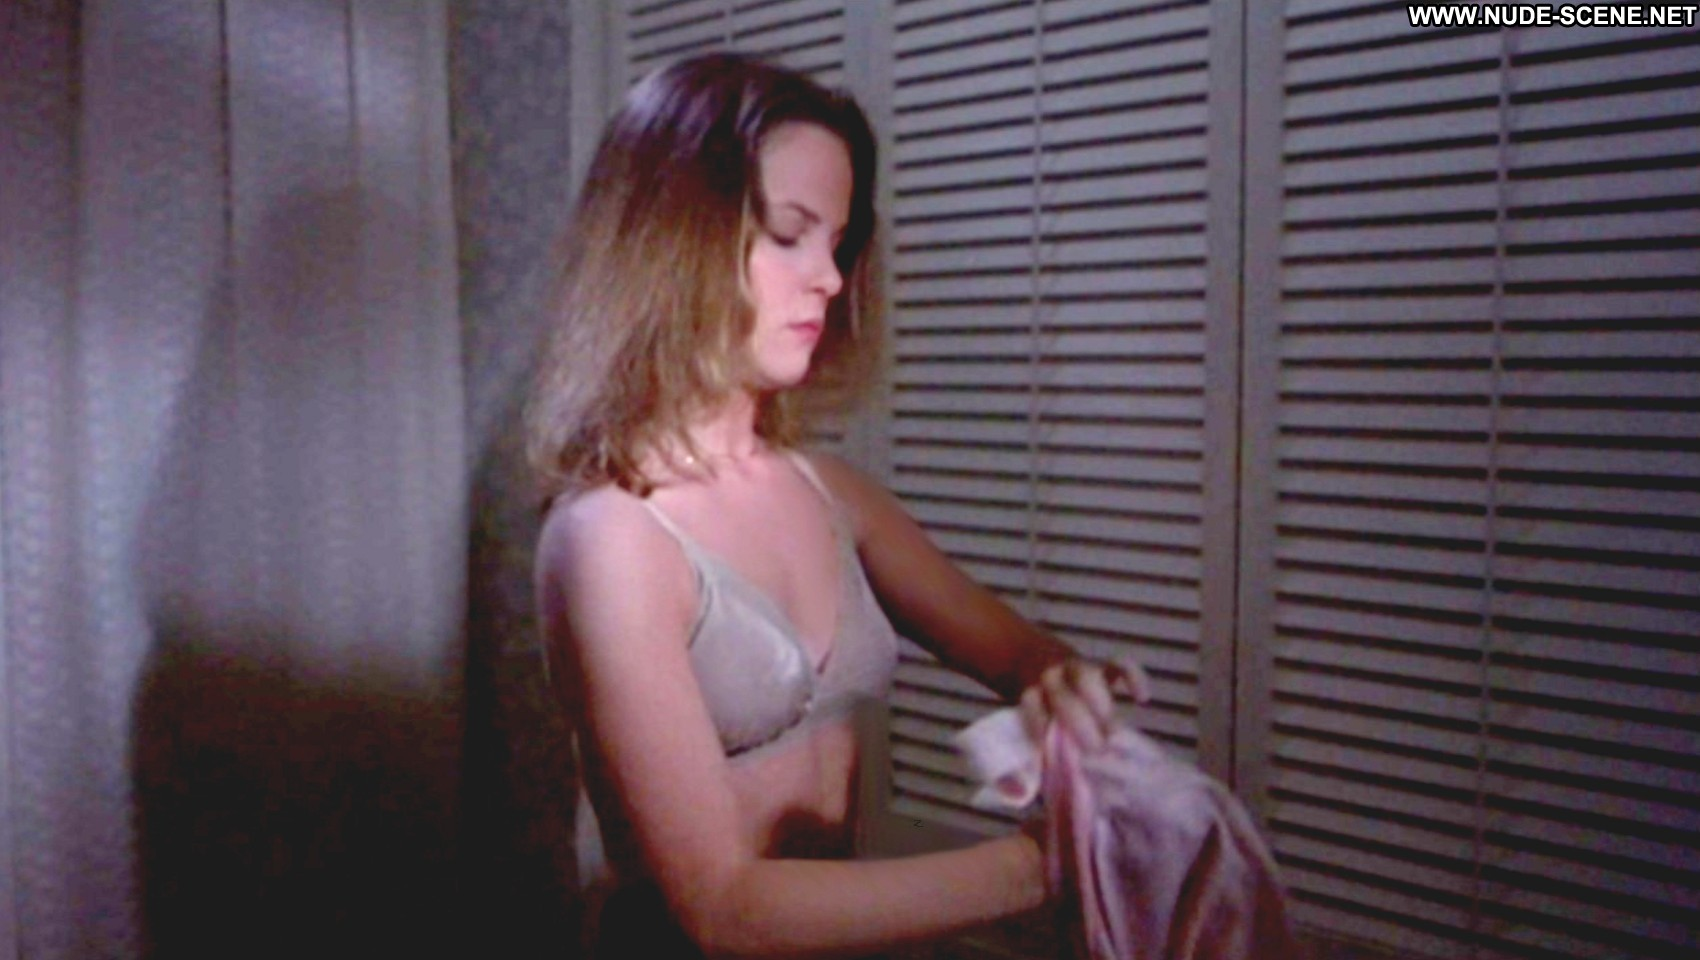 Melissa sue anderson nude, topless pictures, playboy photos, sex scene uncensored